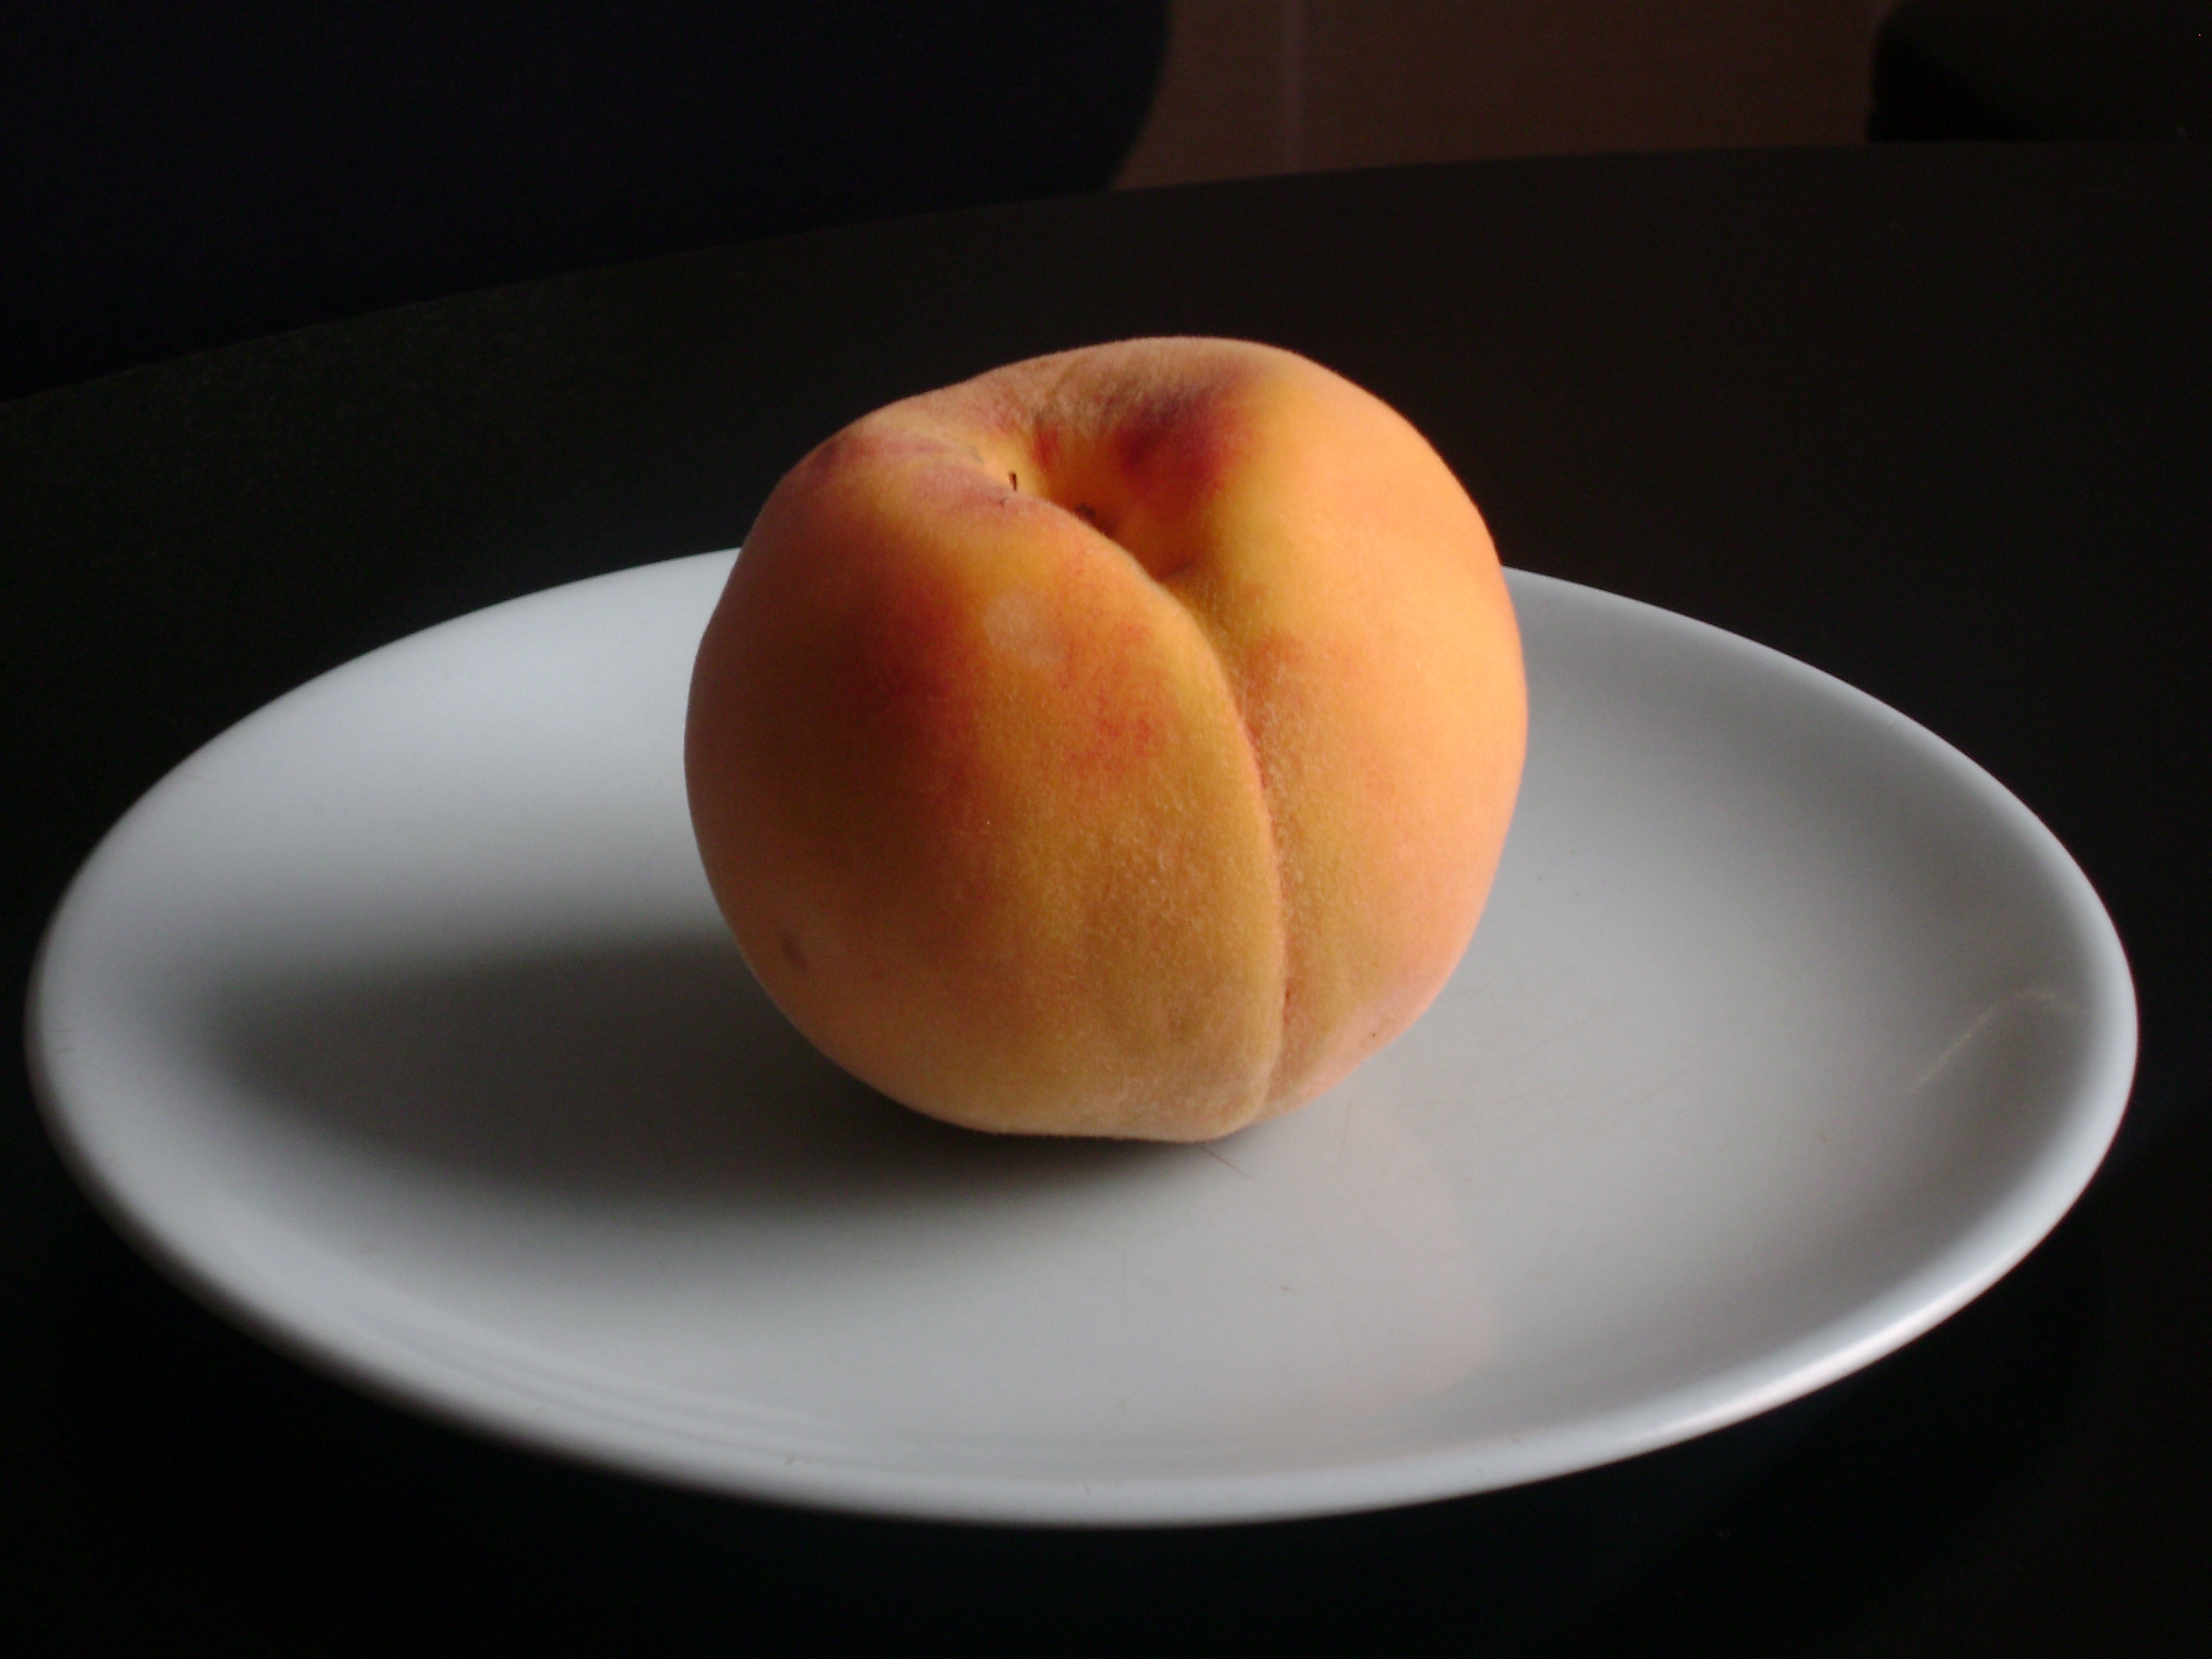 One peach.  Image courtesy of Wikimedia Commons.